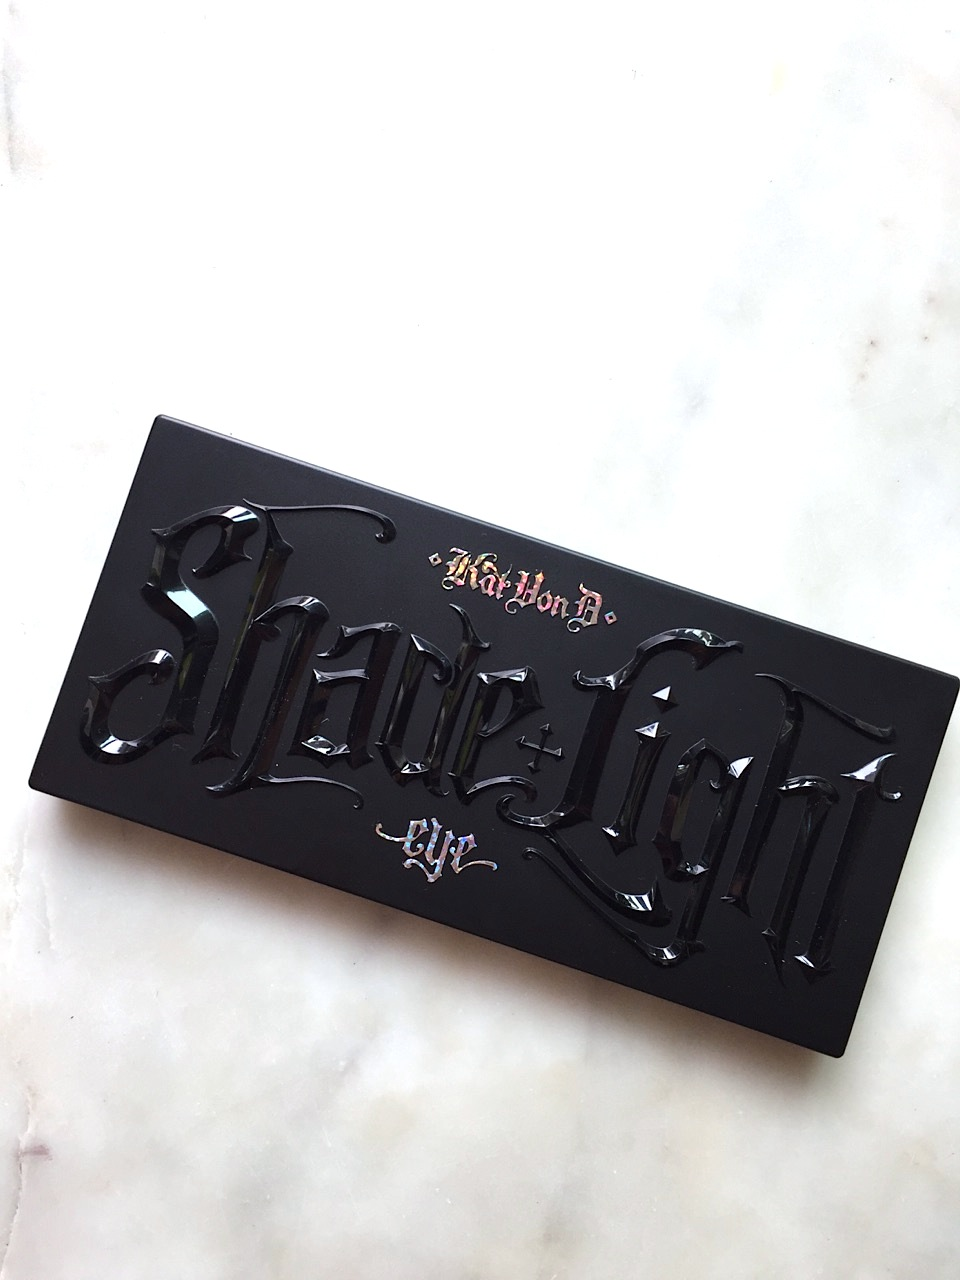 Kat Von D Shade and Light Eye Contour Palette: A quick review